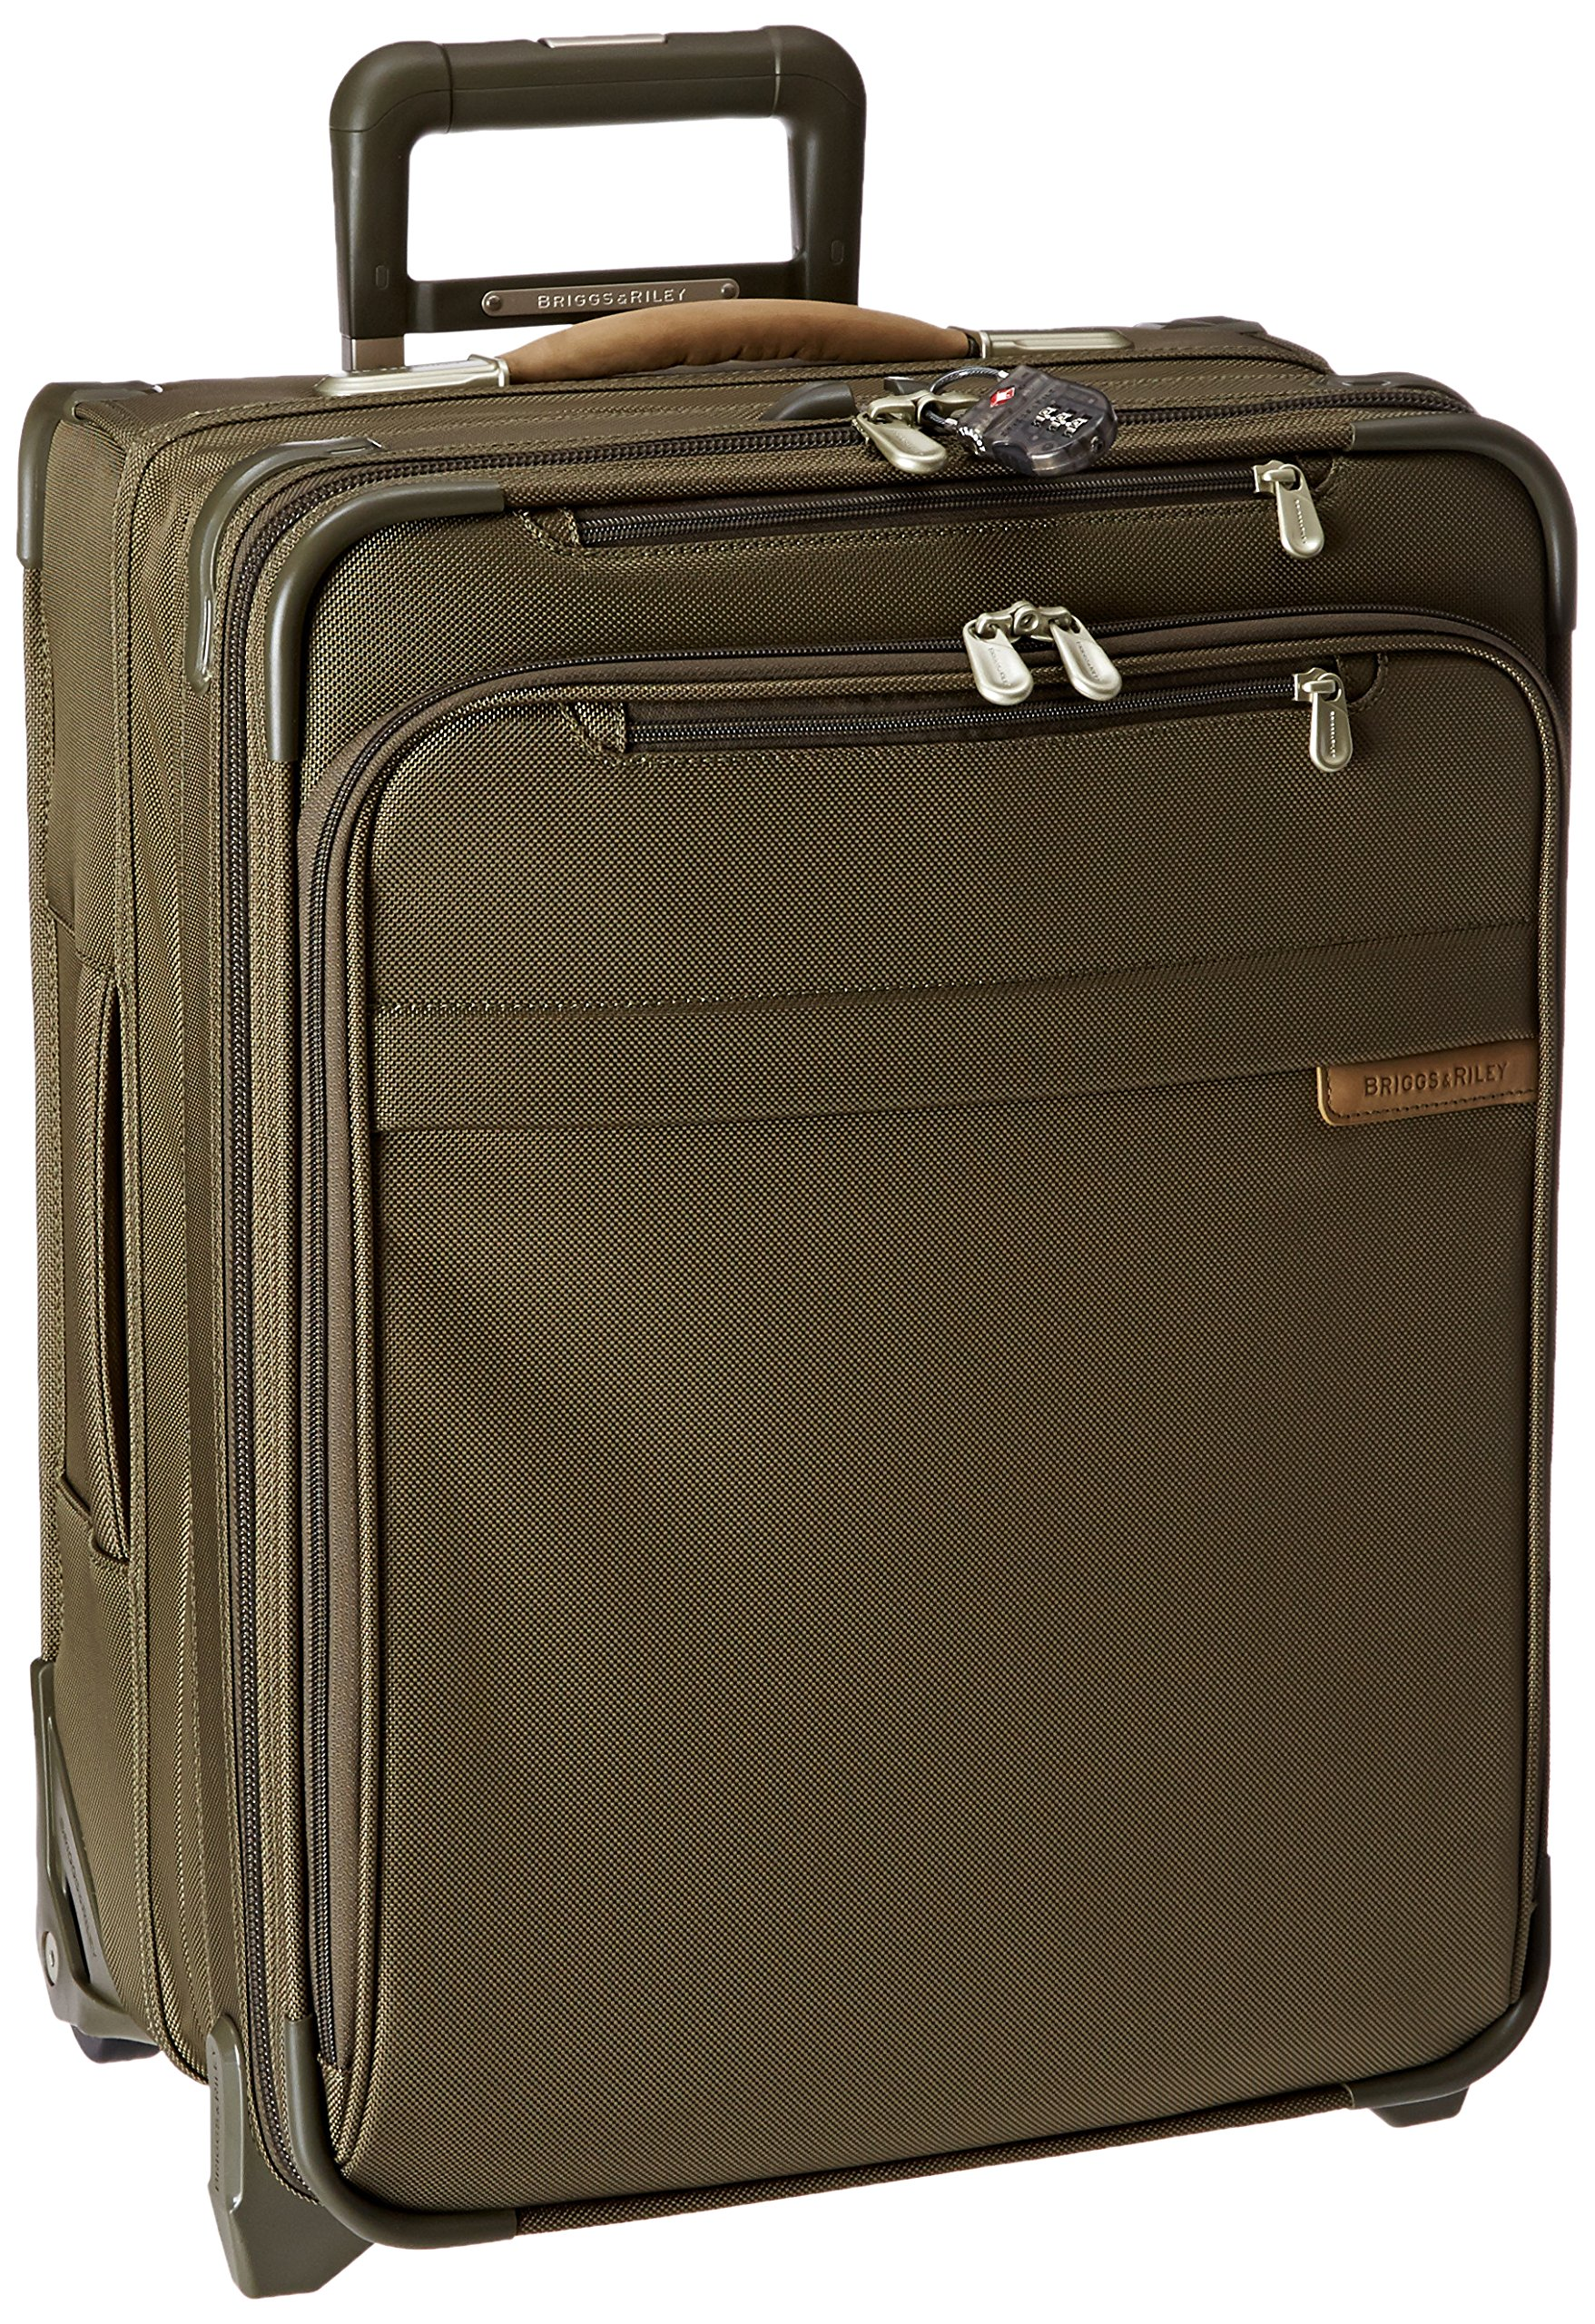 Briggs & Riley Baseline International Carry-On Expandable Wide-Body 21'' Upright Olive by Briggs & Riley